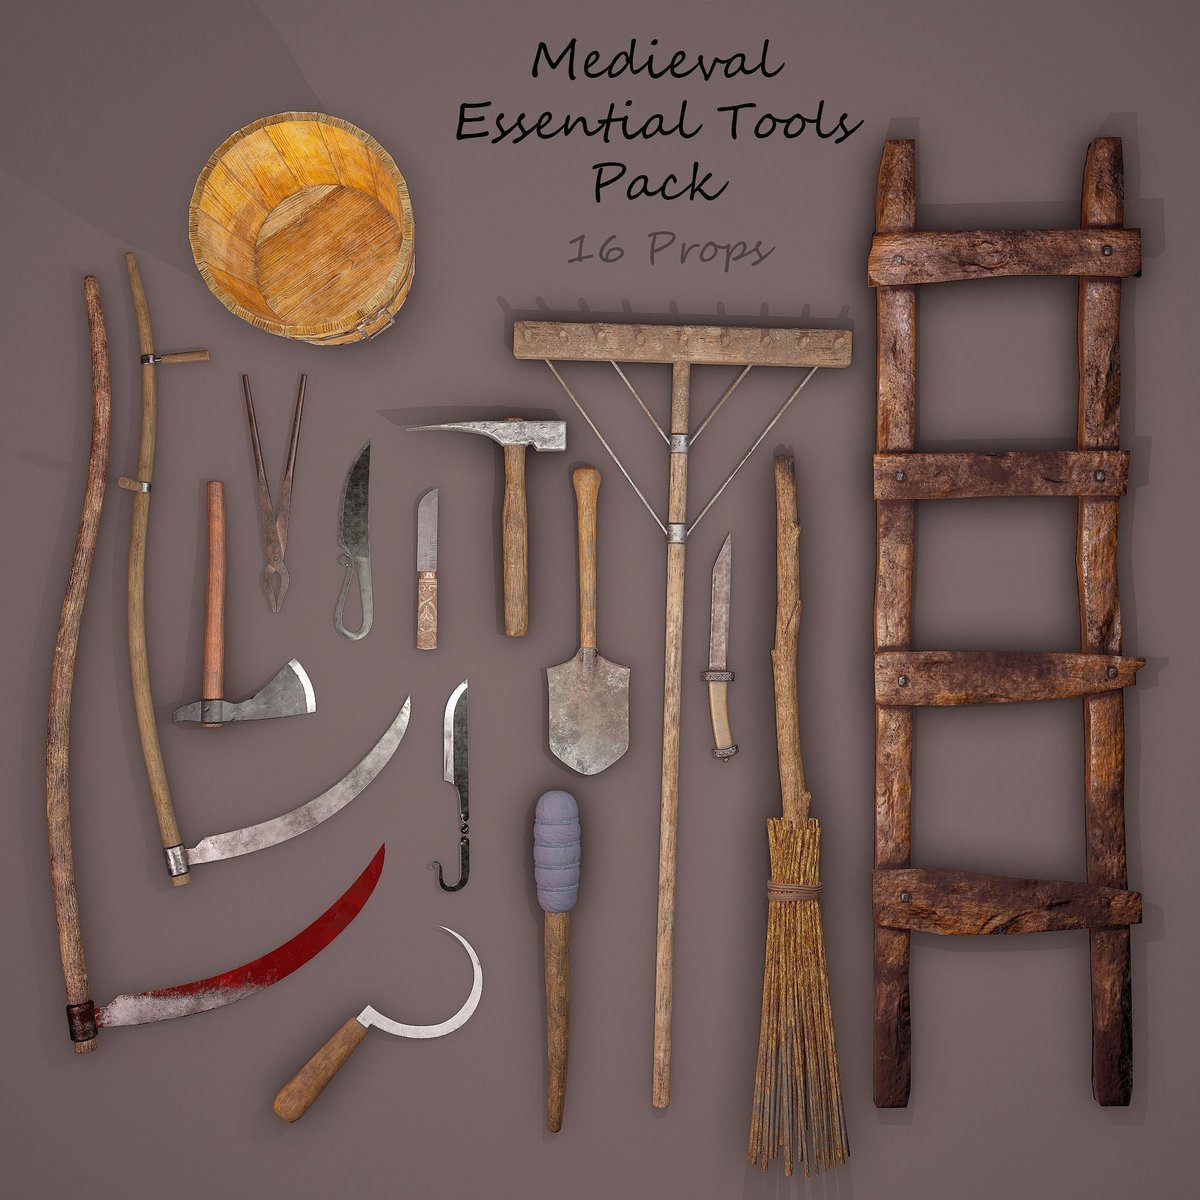 #anotherone #new pack available on our cgtrader page.  Medieval essentials tools. Made by our #talented #team. Optimised for #game engines, #VR #3D #model #maya #3dartist #3dmodel #cgtrader #pack #medieval #3dart #animation #cgi #tools  https://t.co/zPeesmJjL3 https://t.co/HUH48b49jl